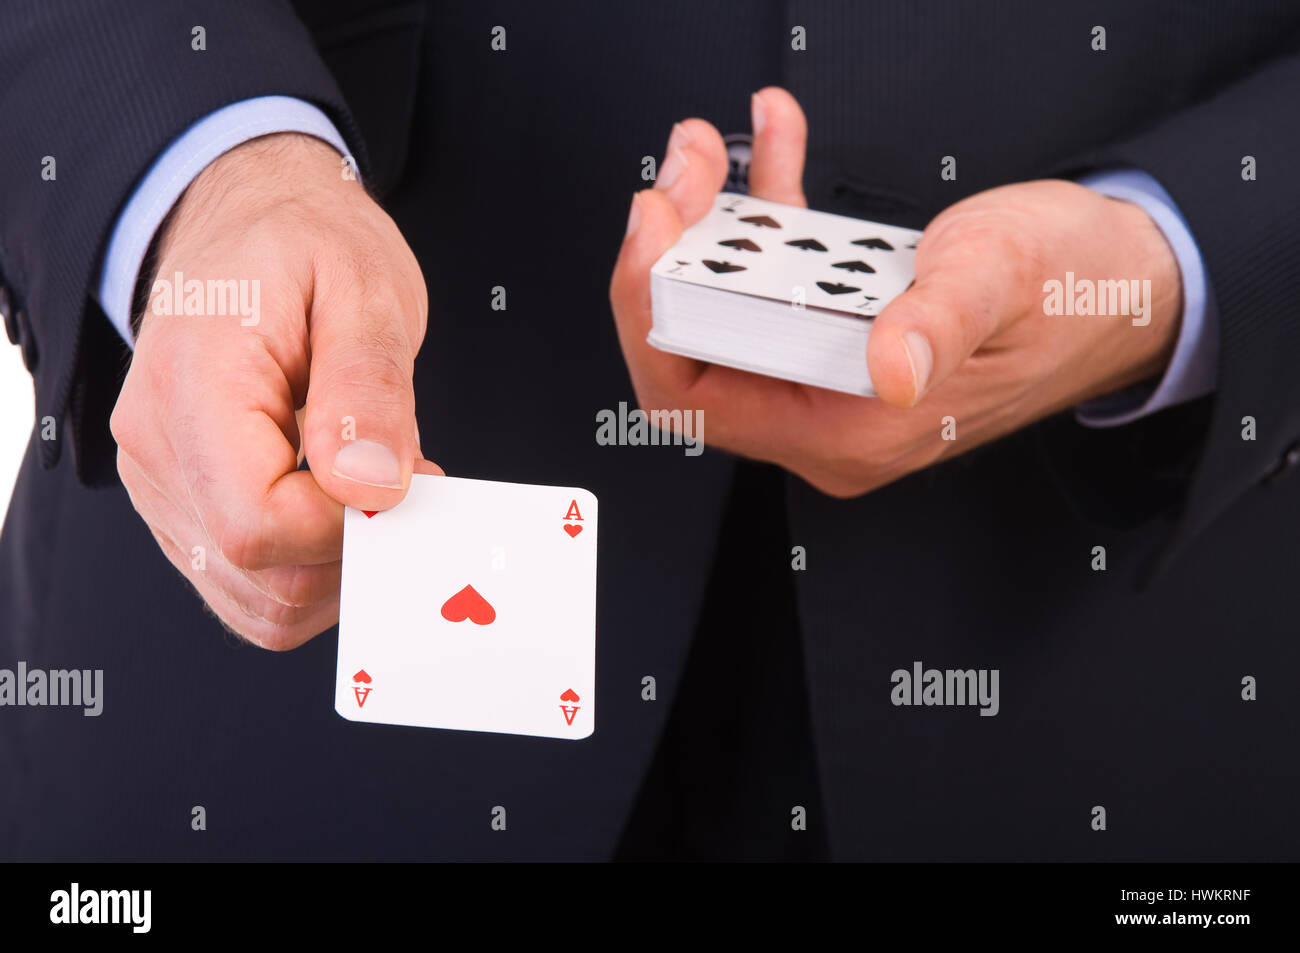 Businessman showing playing cards. - Stock Image